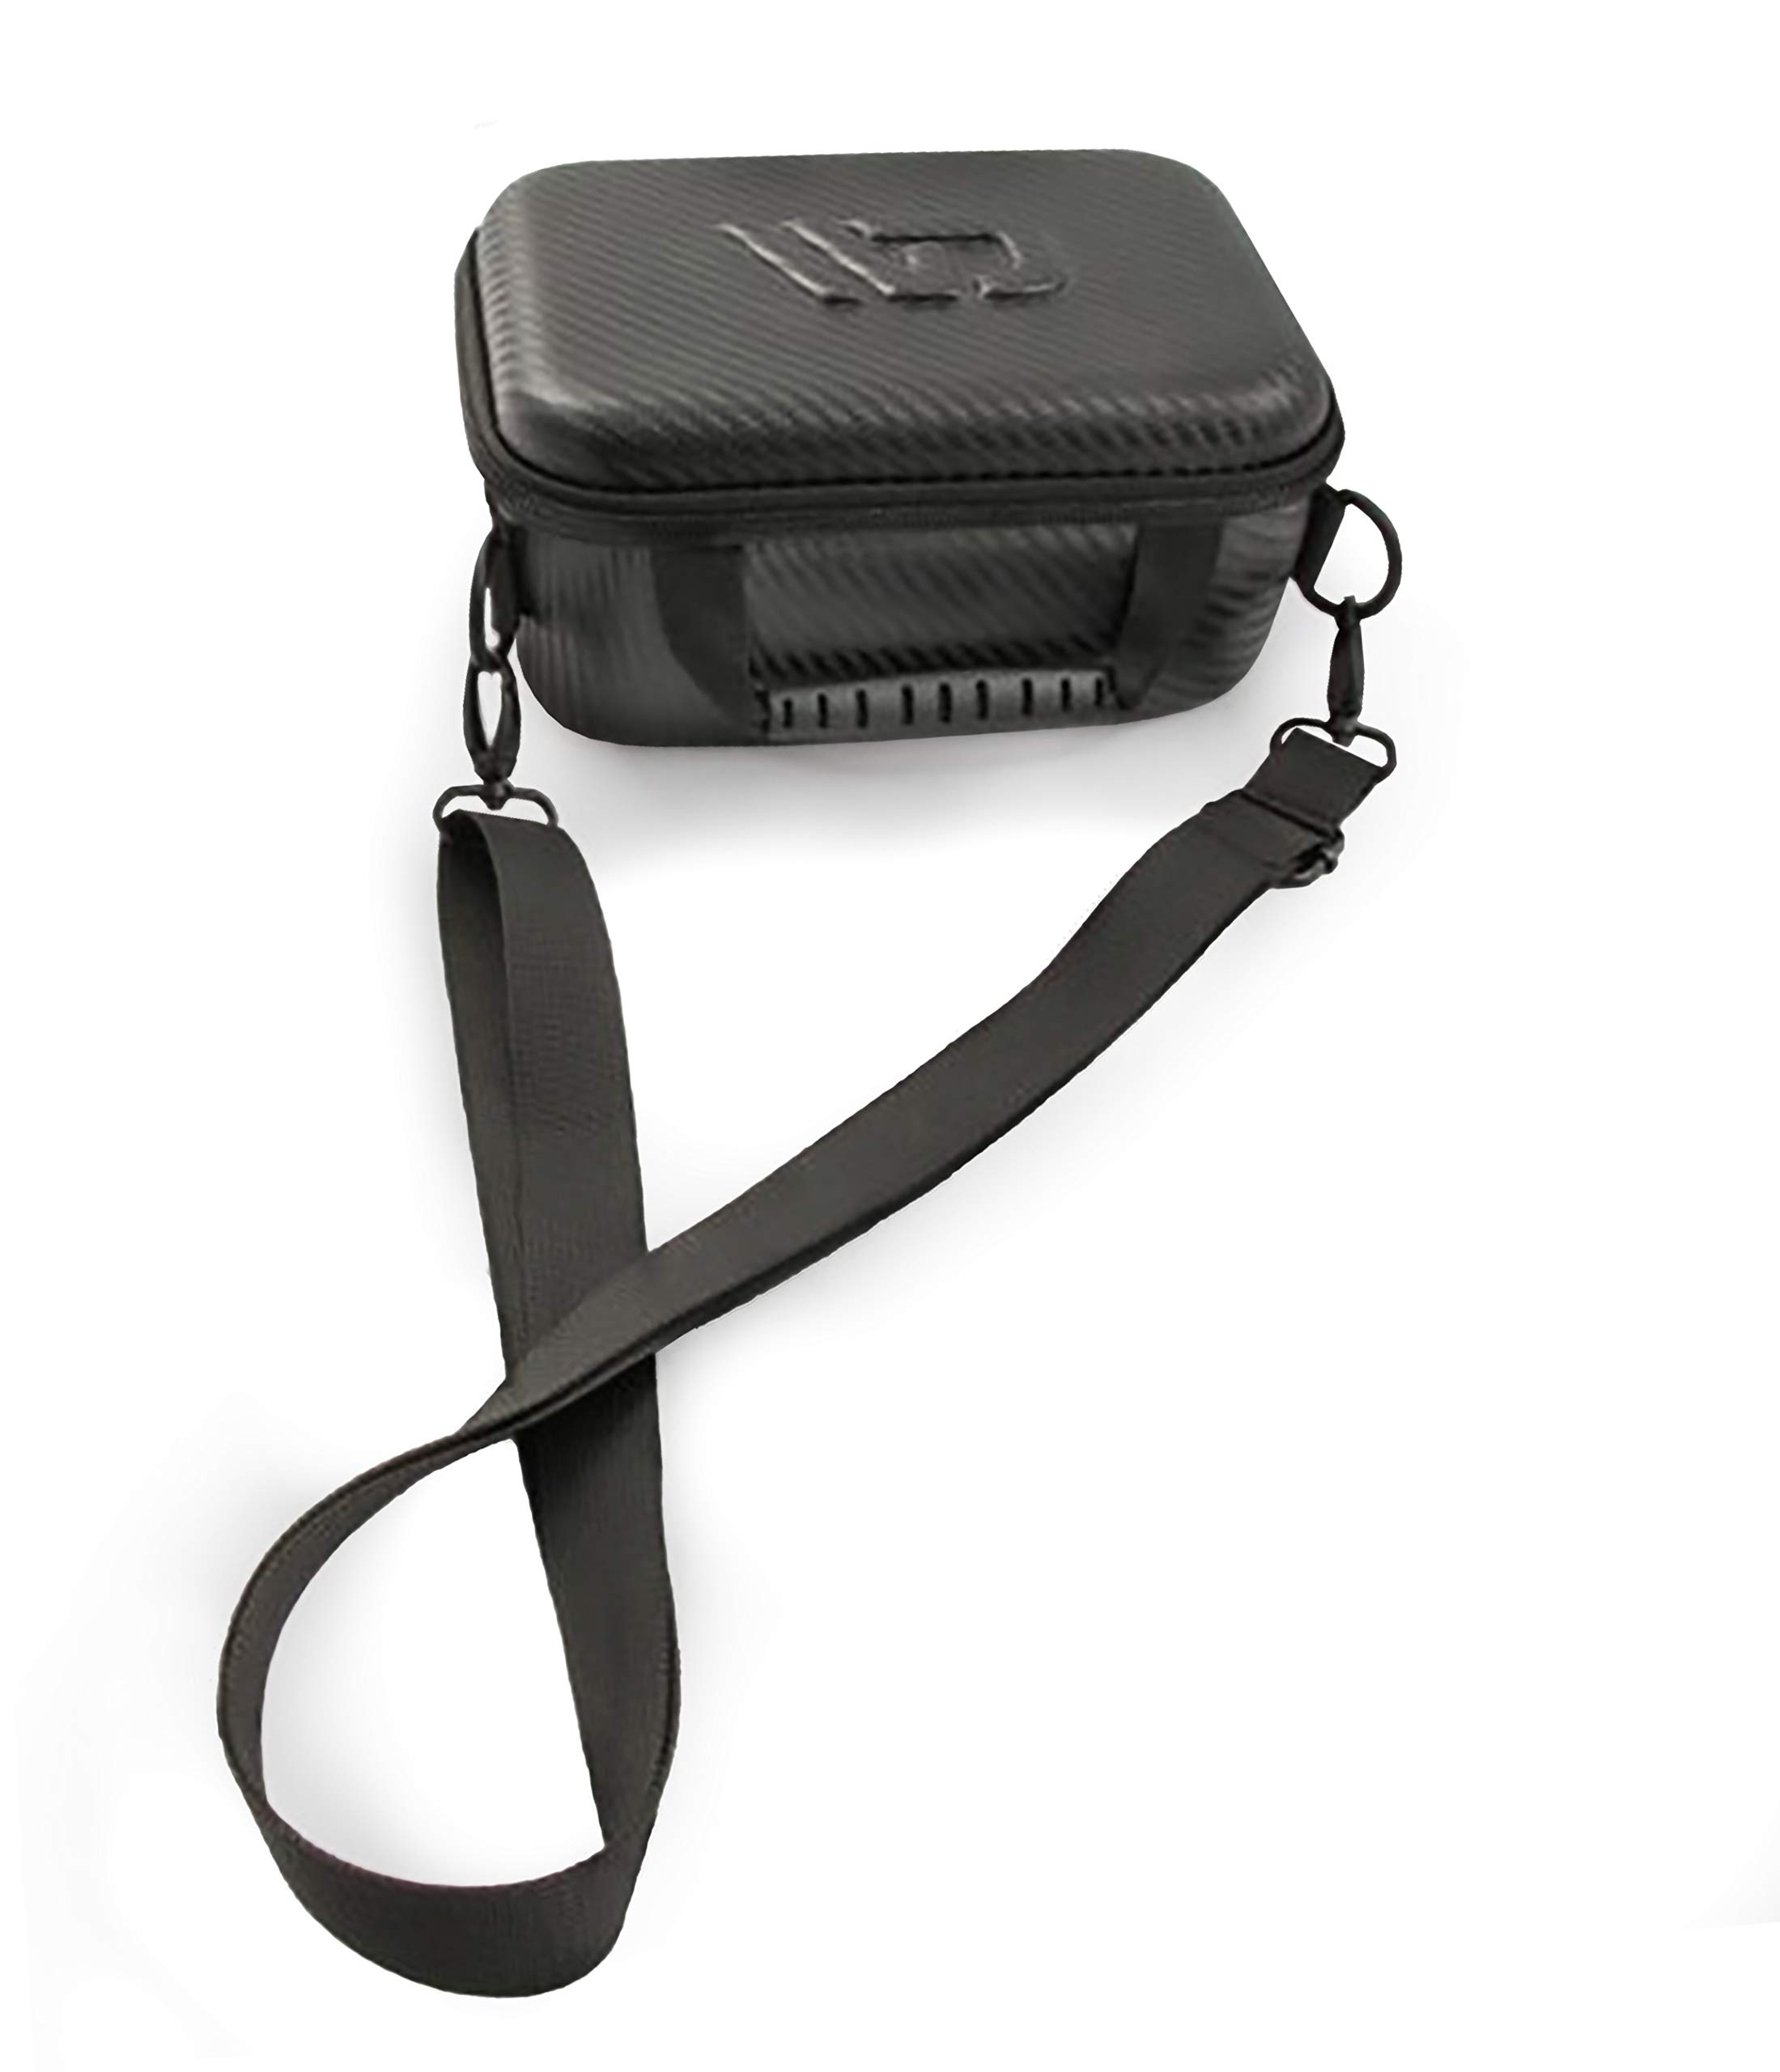 CASEMATIX Travel Carry Case Fits Square Terminal Reader, Square Terminal Printer Paper and Accessories - Shoulder Strap, Water-Resistant by CASEMATIX